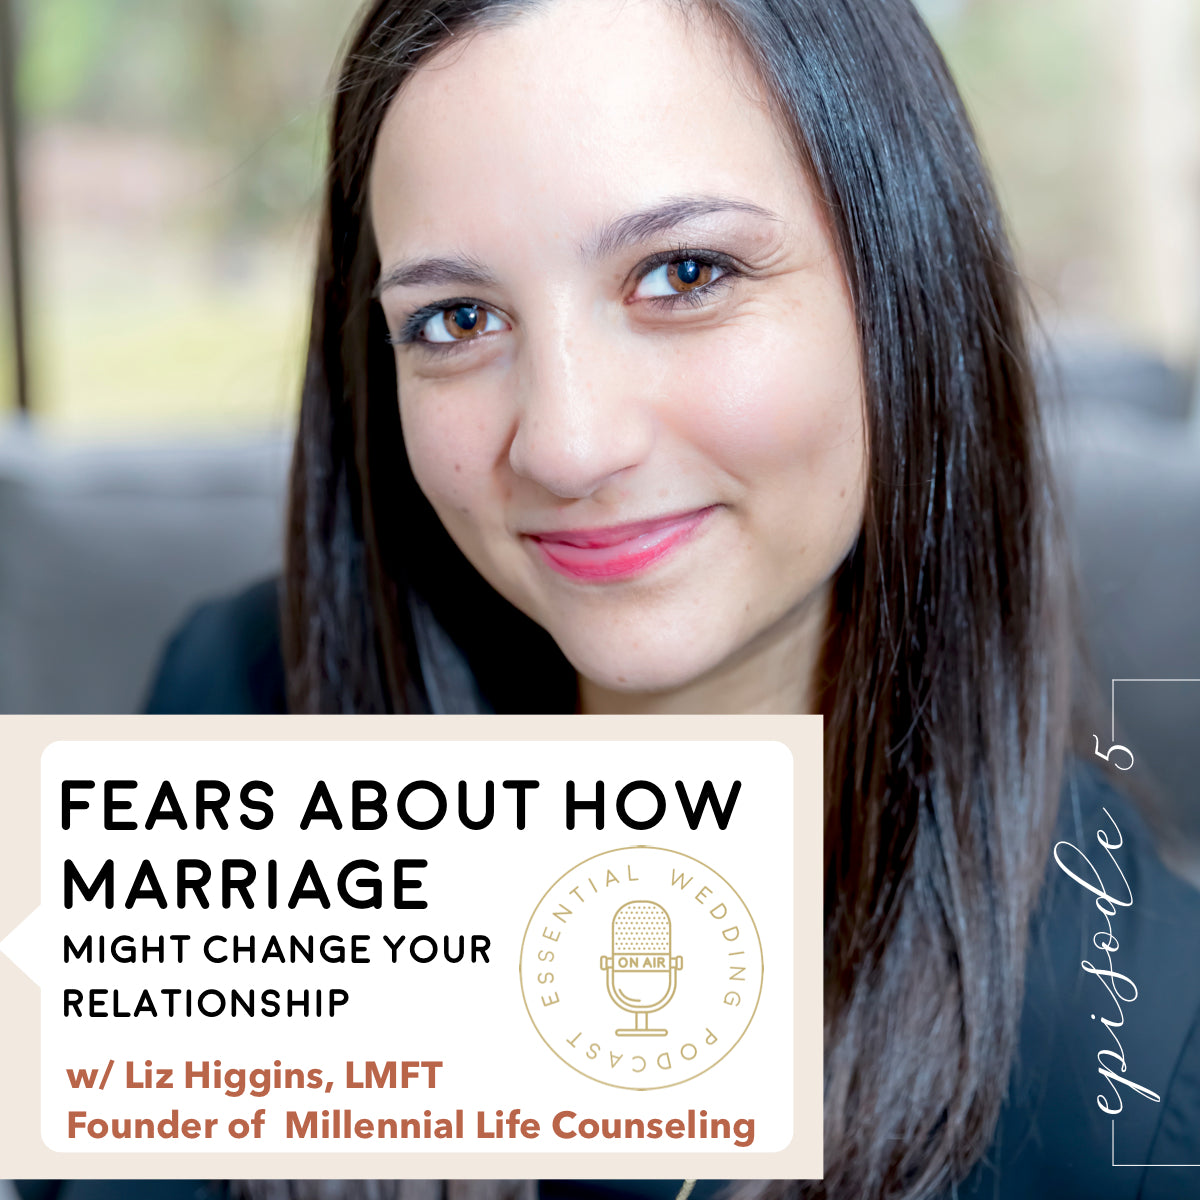 Ep. 5 Fears About How Marriage Might Change Your Relationship w/Liz Higgins, LMFT